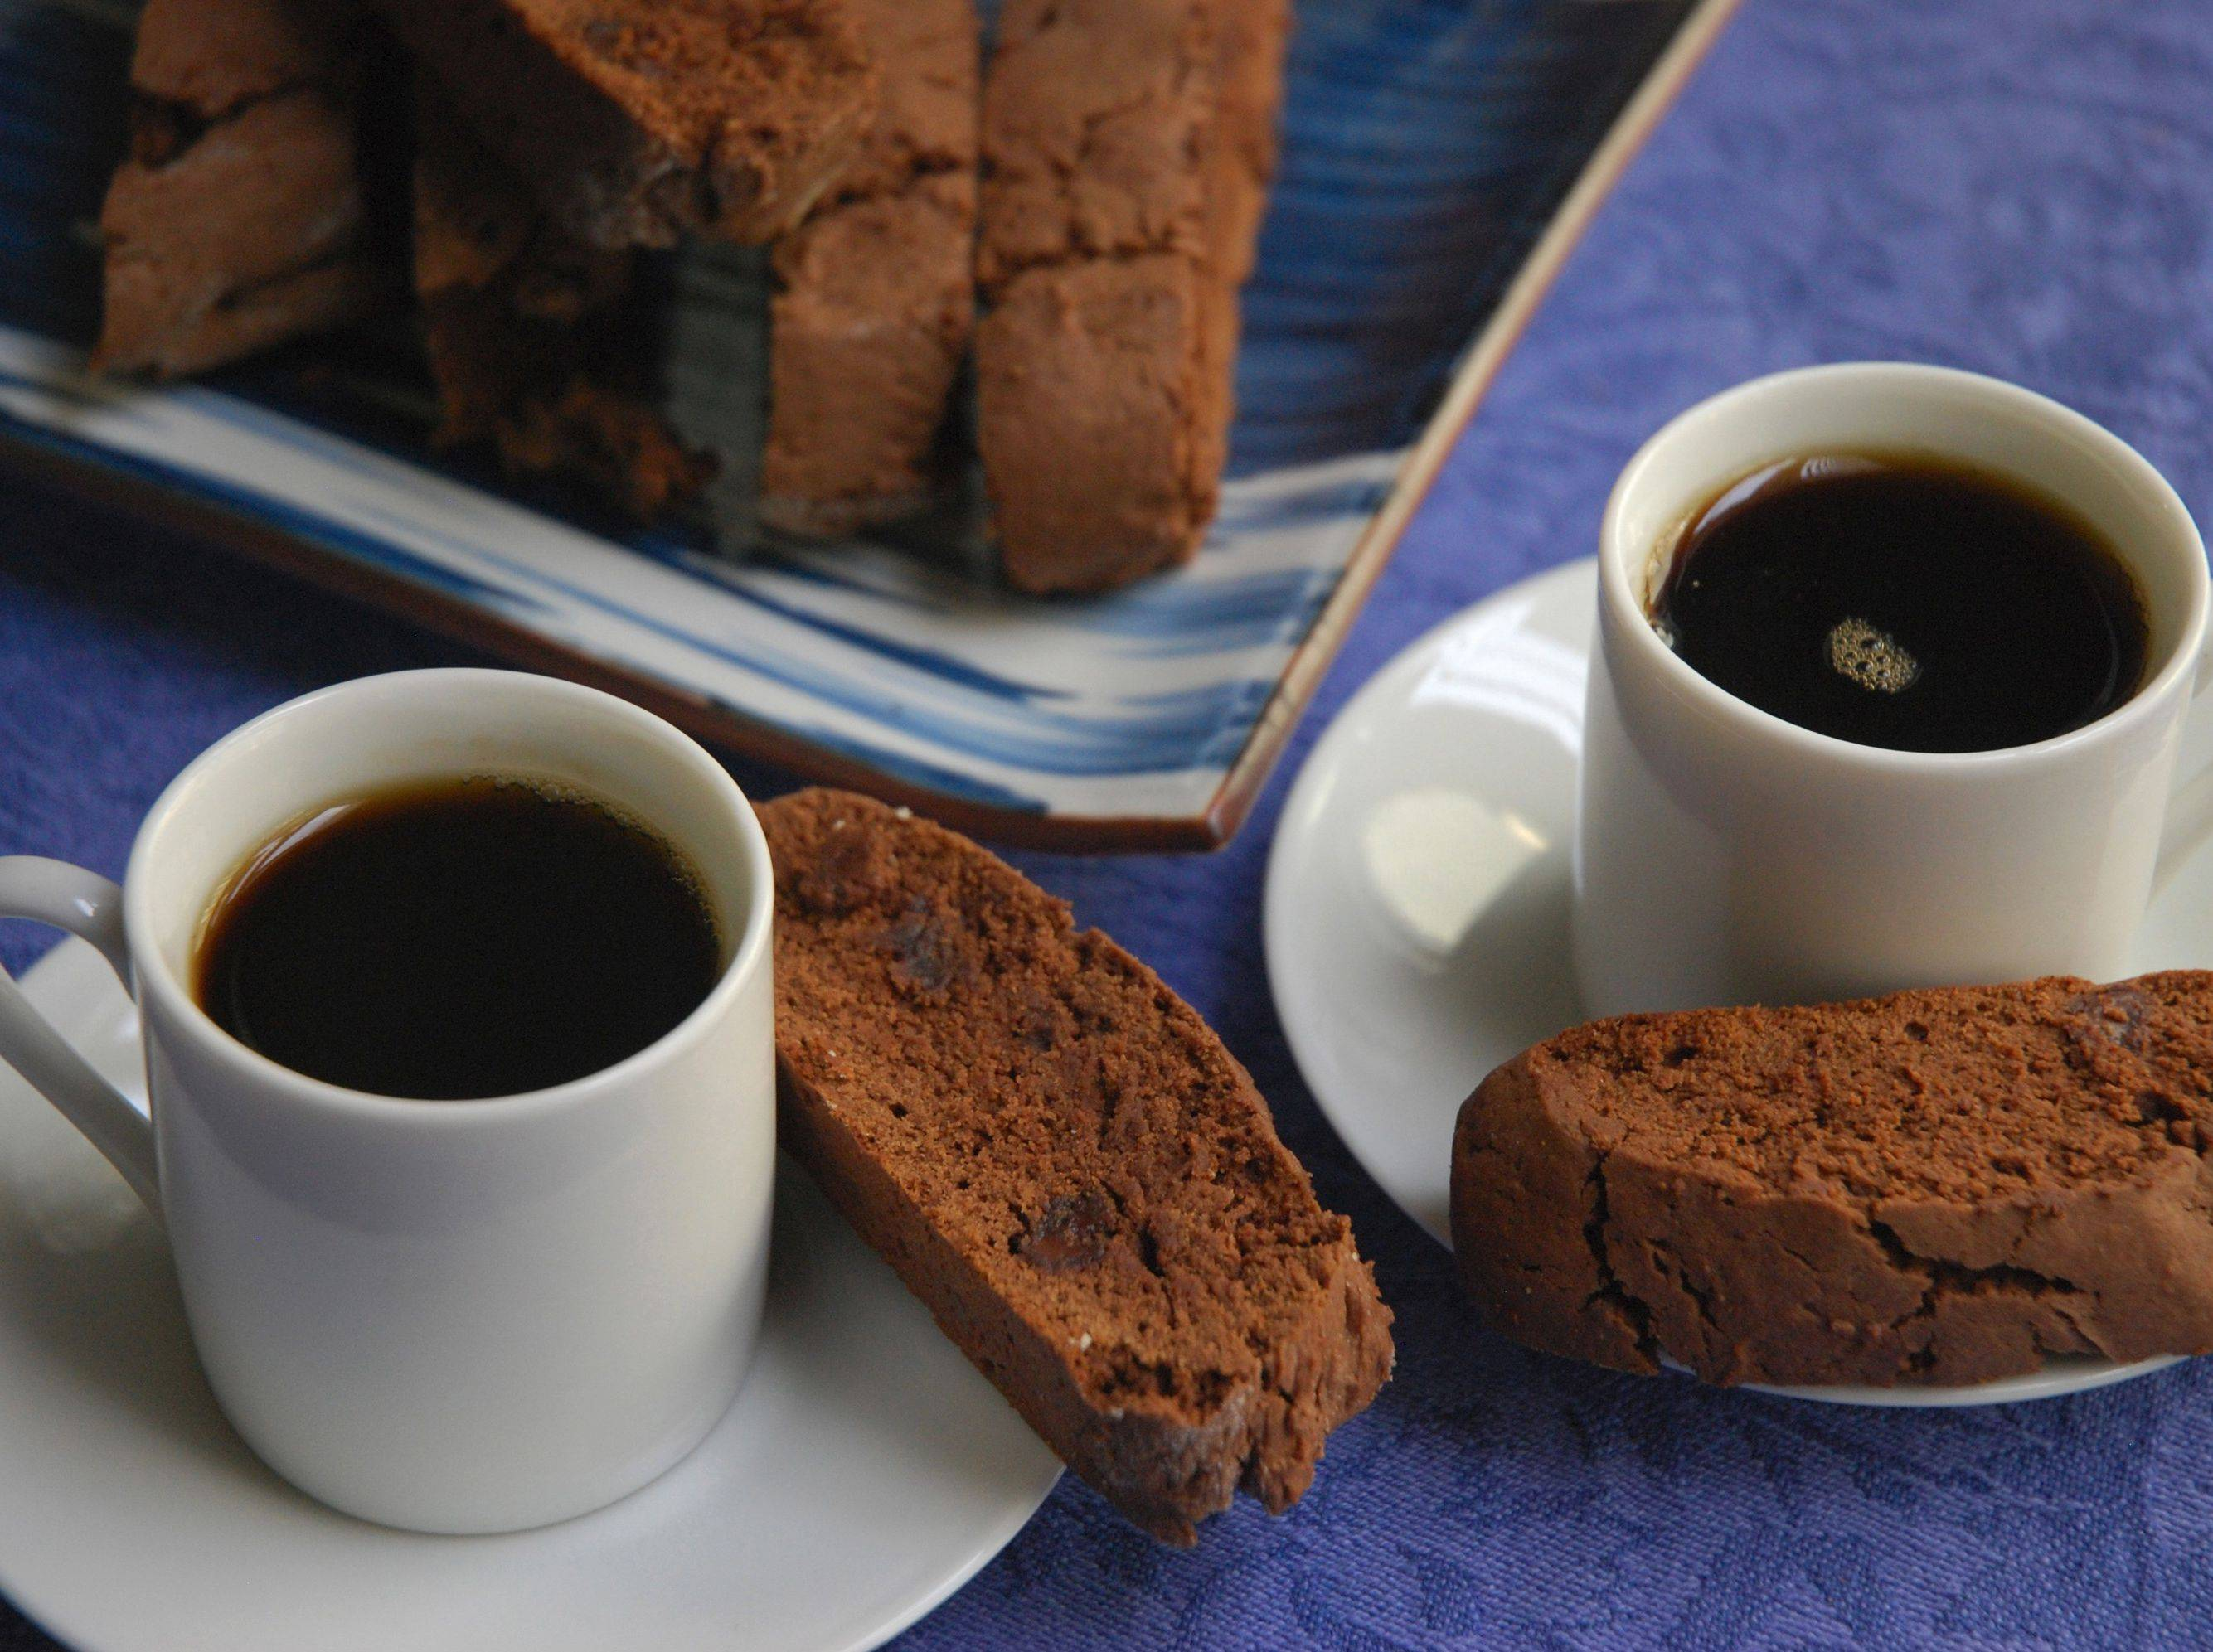 Crisp, chocolate-y and perfect for dunking, Double Chocolate Biscotti are sure to please.